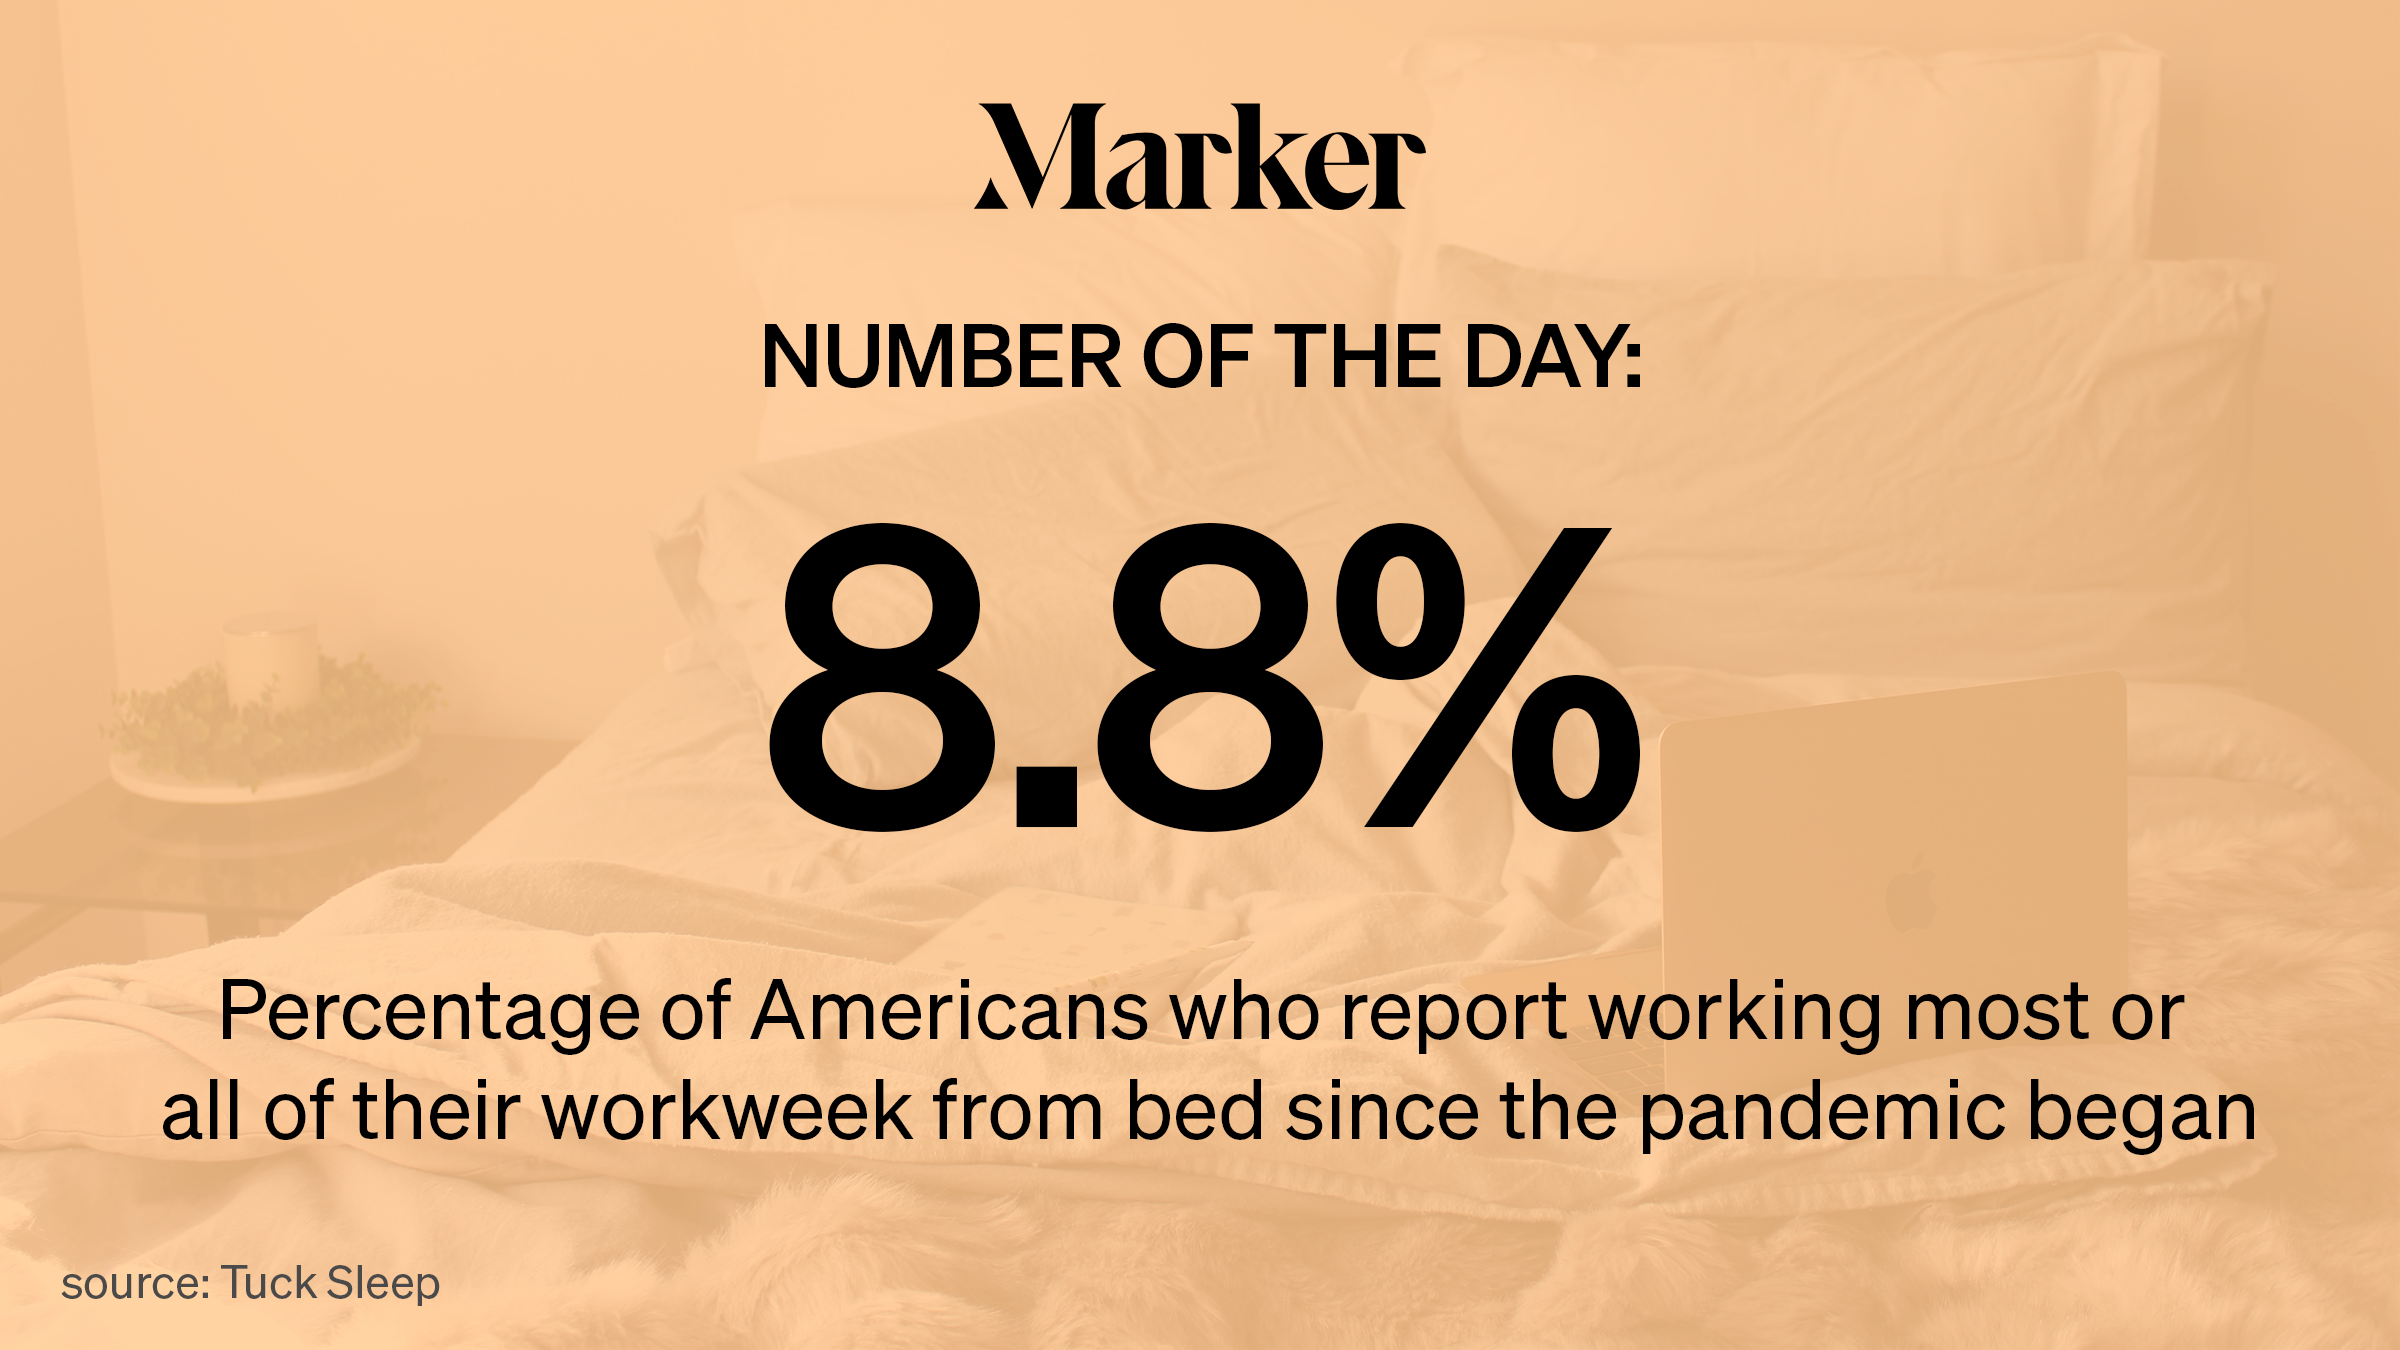 8.8% — Percentage of Americans who report working most or all of their workweek from bed since the pandemic began.